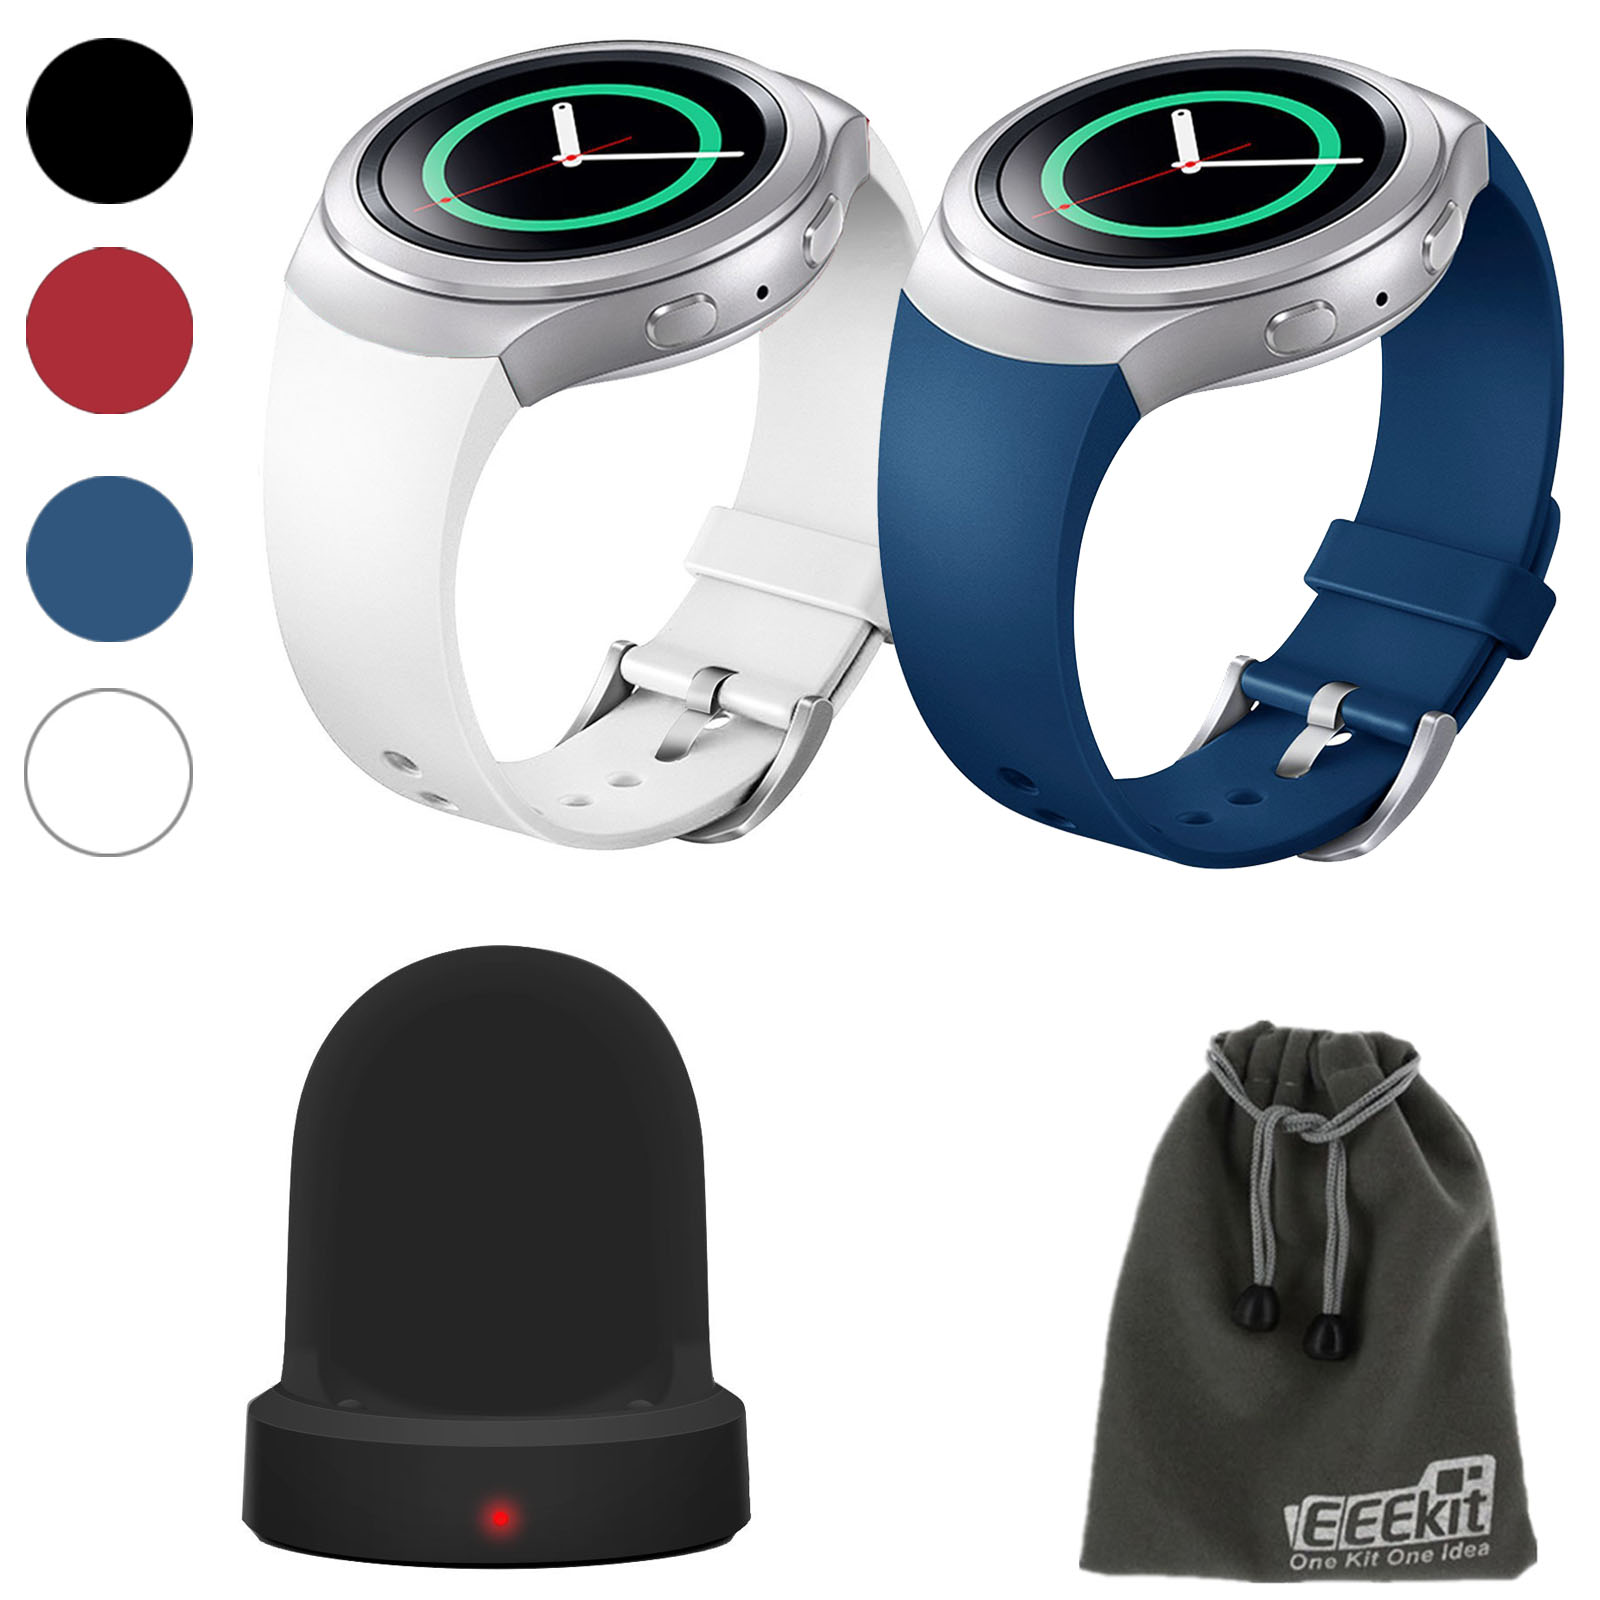 TSV 2in1 Kit for Samsung Gear S2 SM-R720 Version, 2 Pcs Silicone Smart Watch Band Strap+Wireless Charger Dock Station